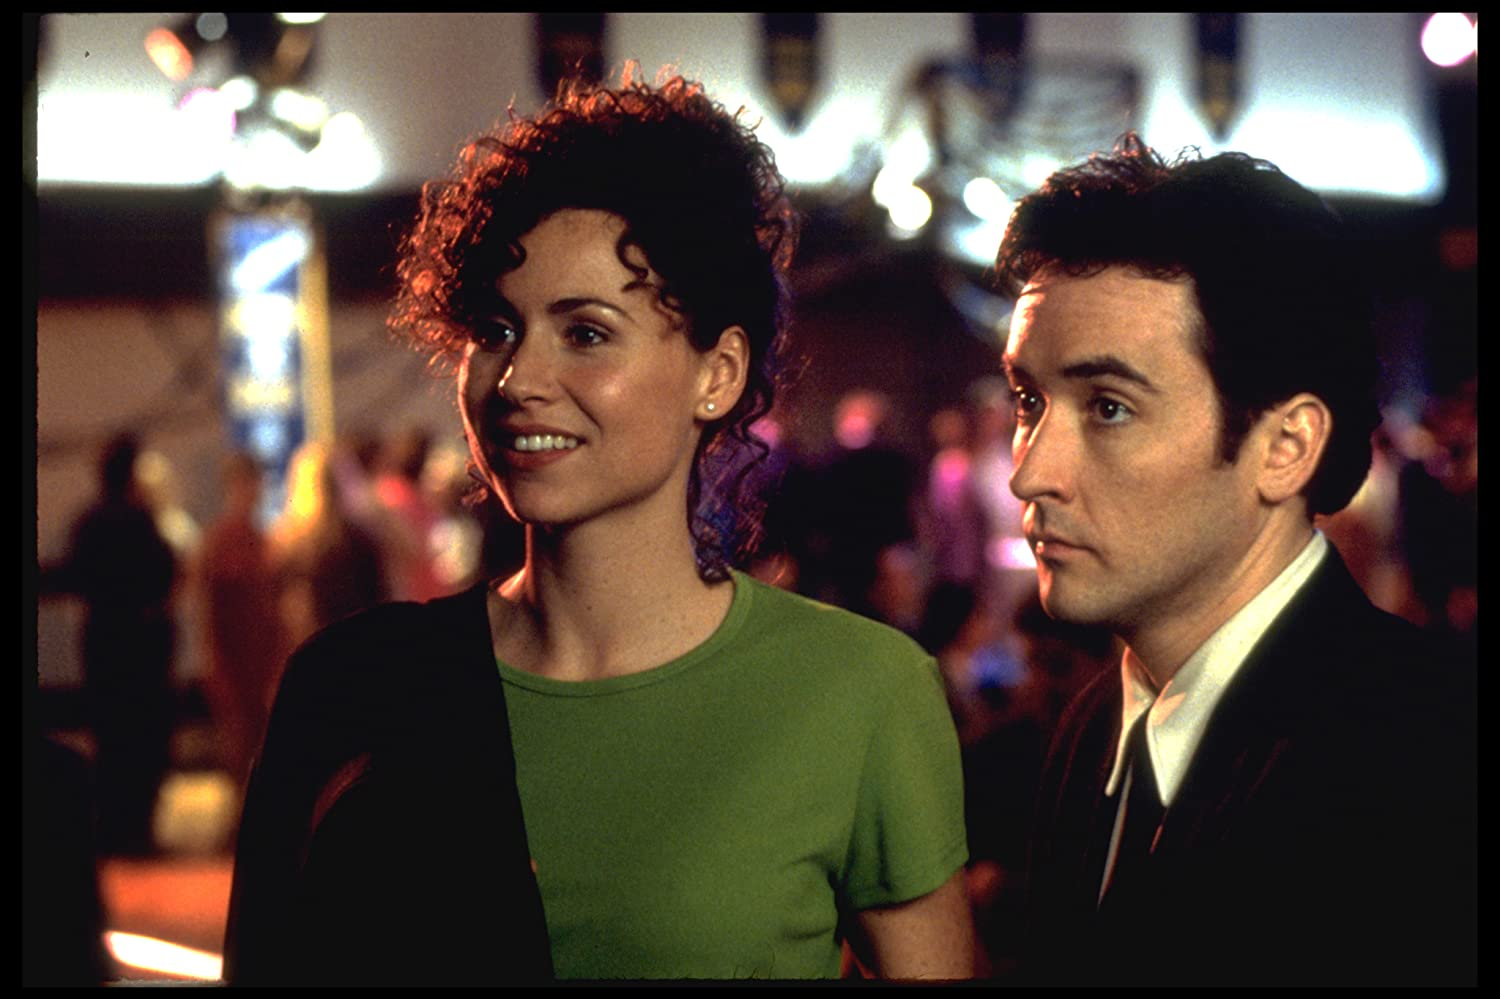 John Cusack and Minnie Driver in Grosse Pointe Blank (1997)